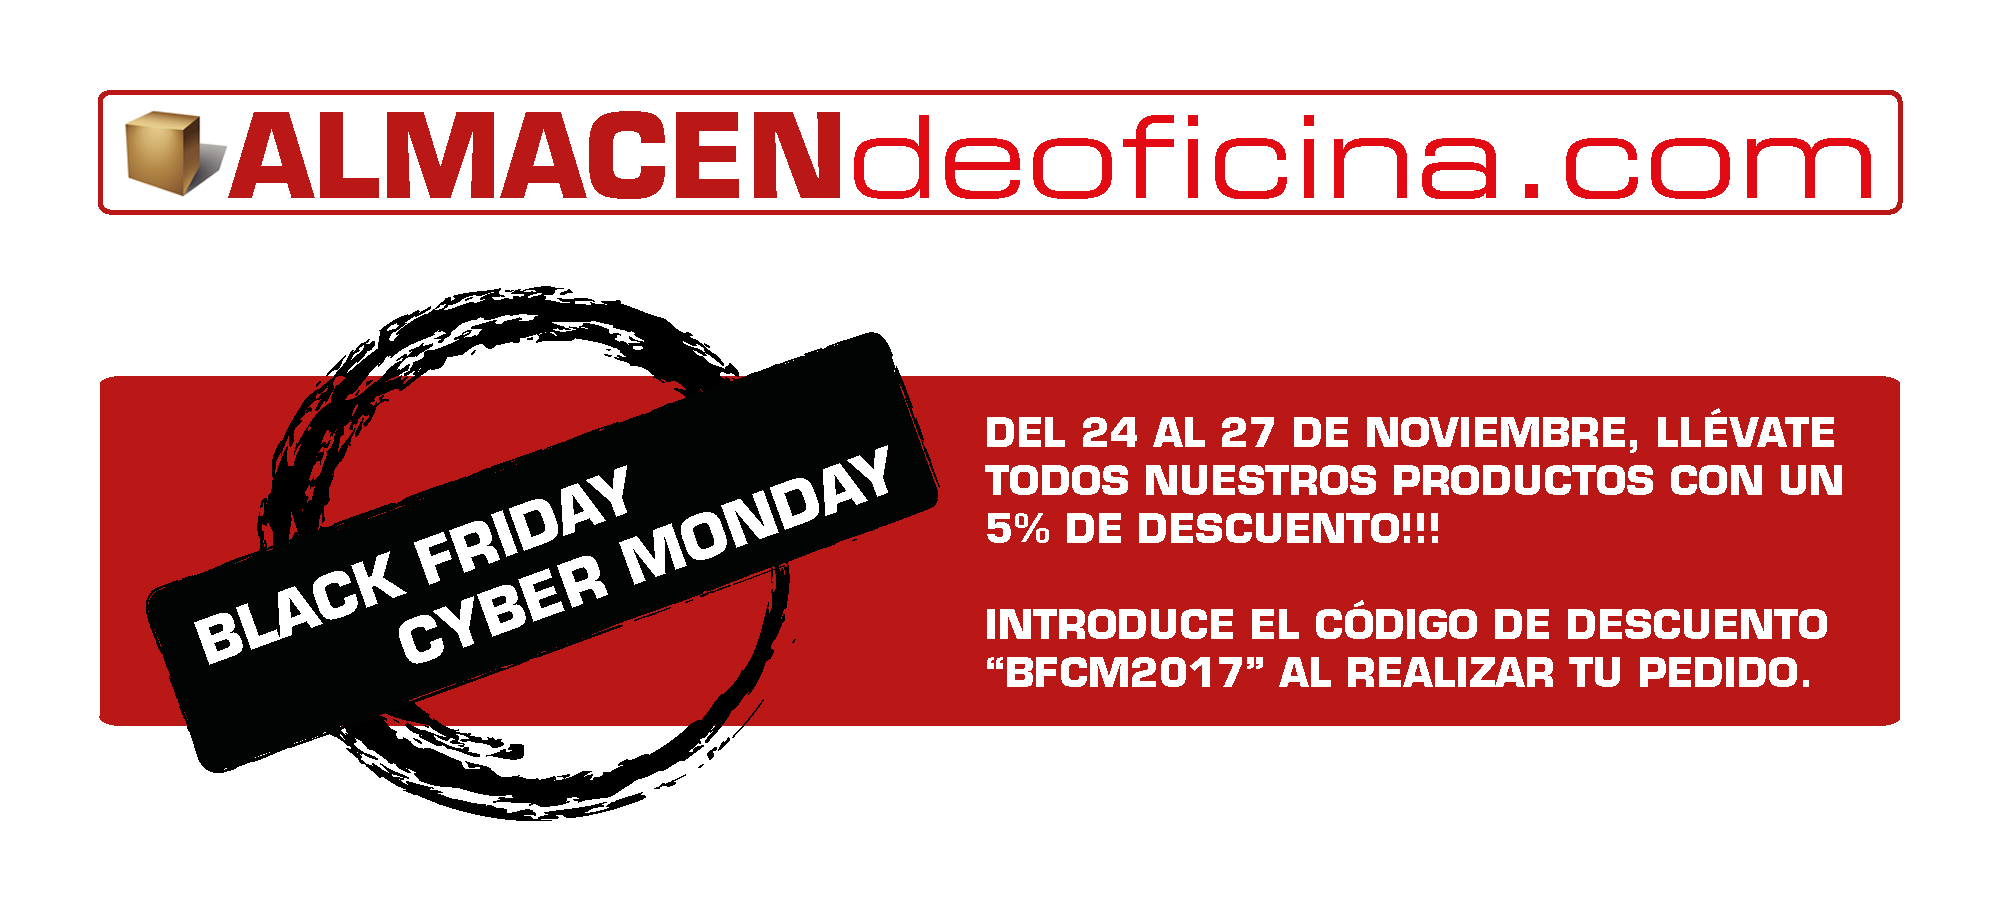 Black Friday y Cyber Monday 2017